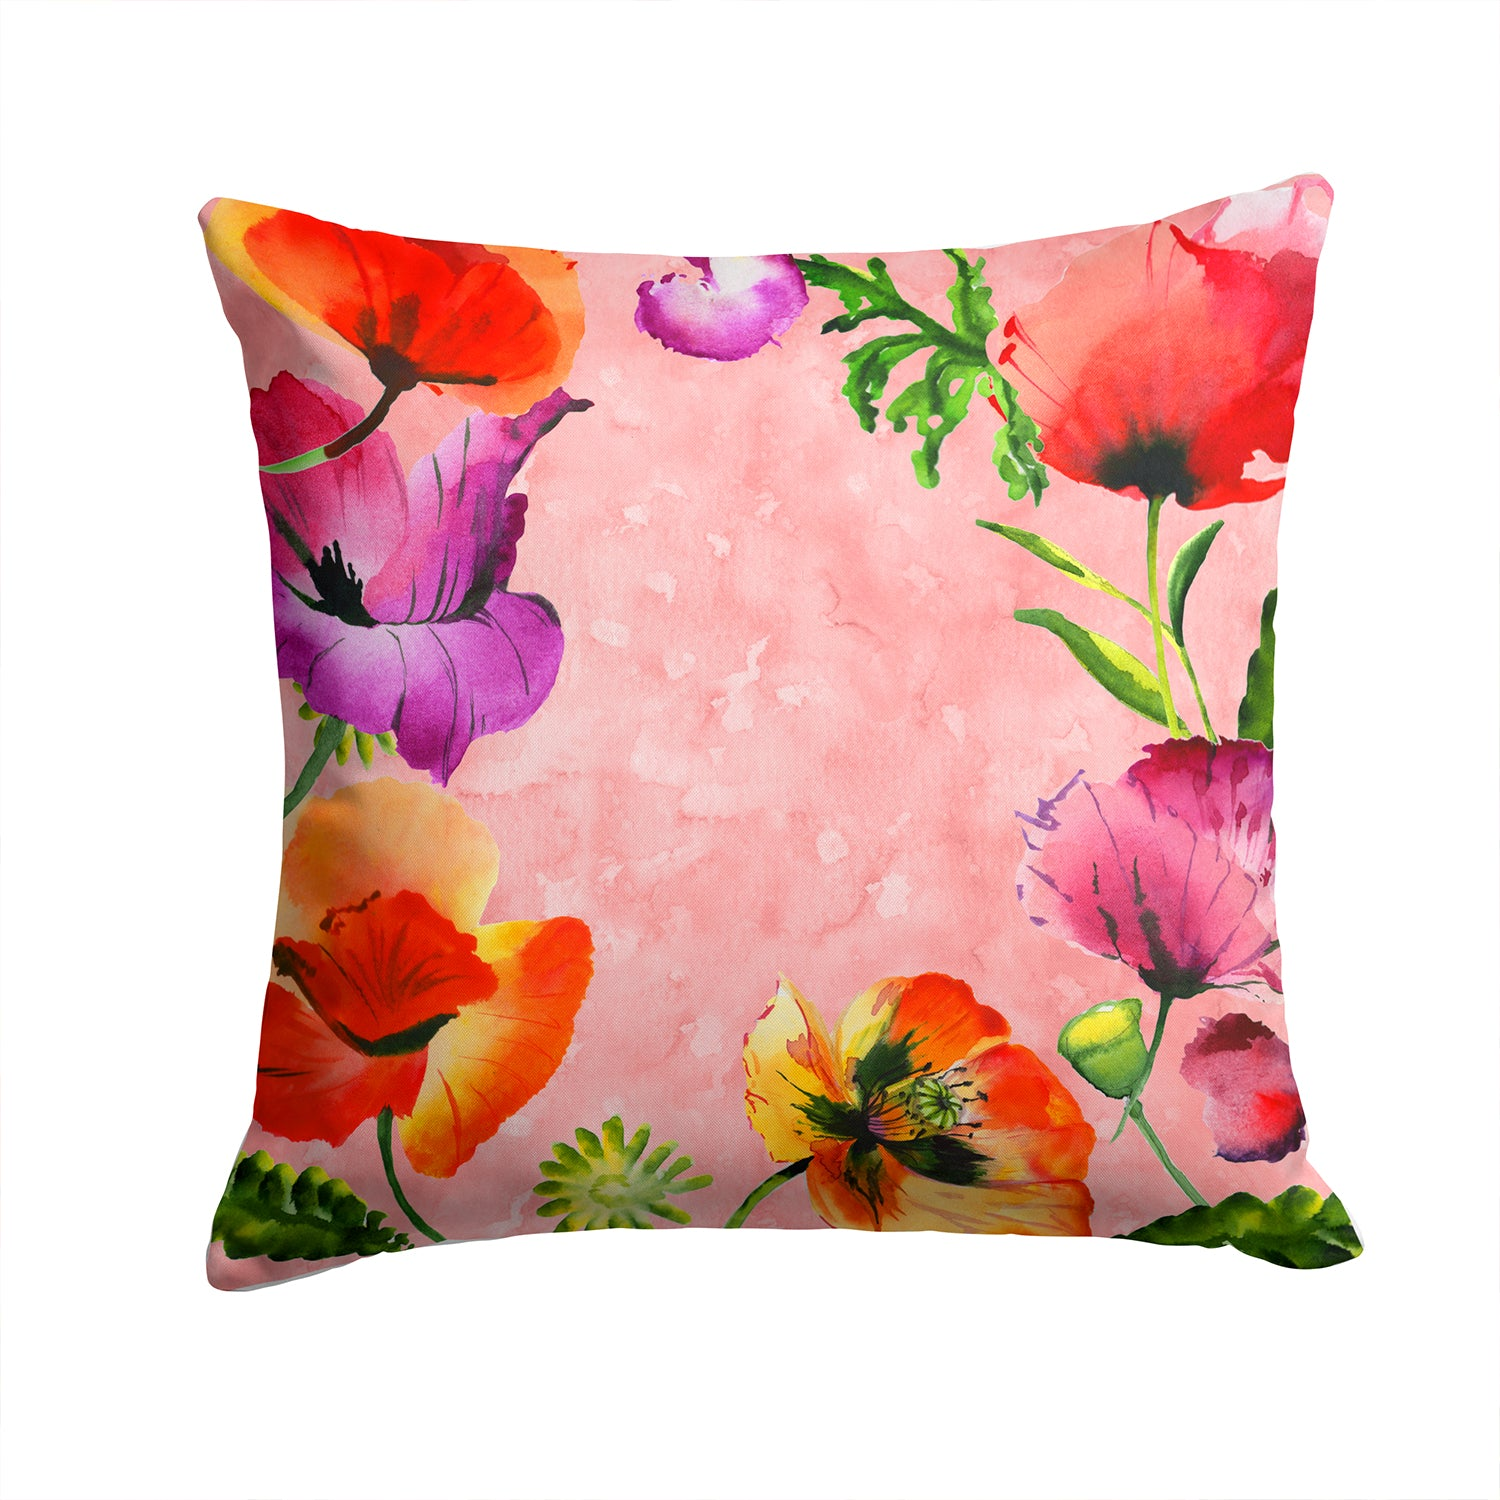 Buy this Poppy Flowers Fabric Decorative Pillow CK1701PW1414